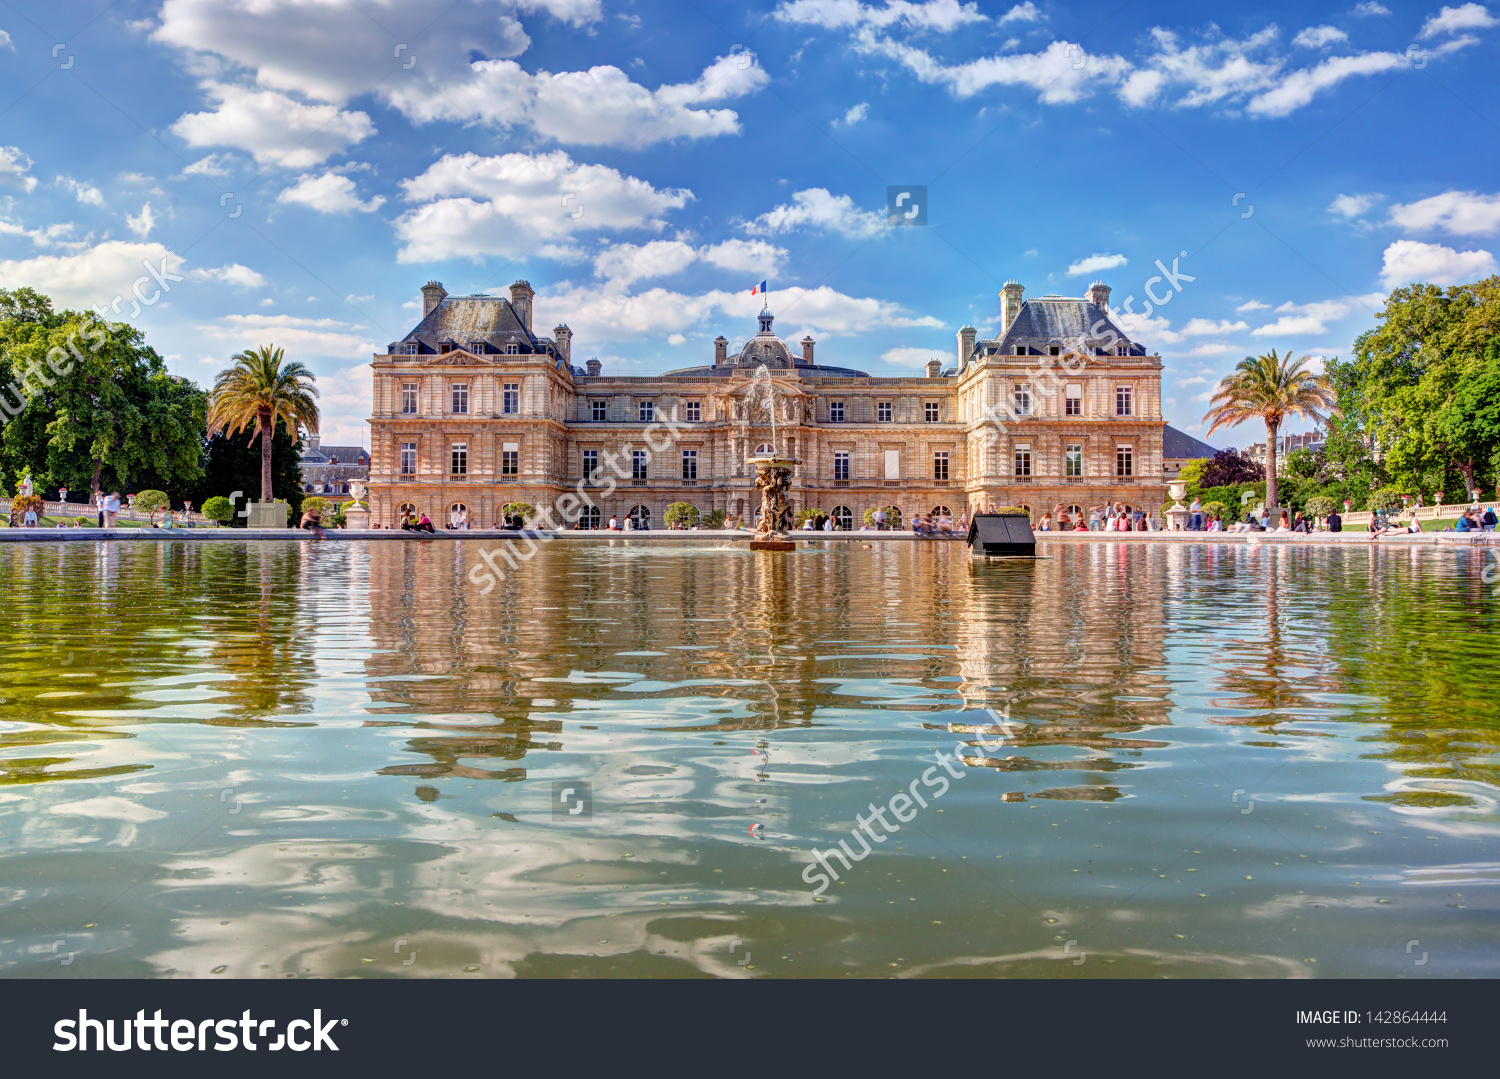 Jardin du luxembourg clipart clipground for Jardin du luxembourg